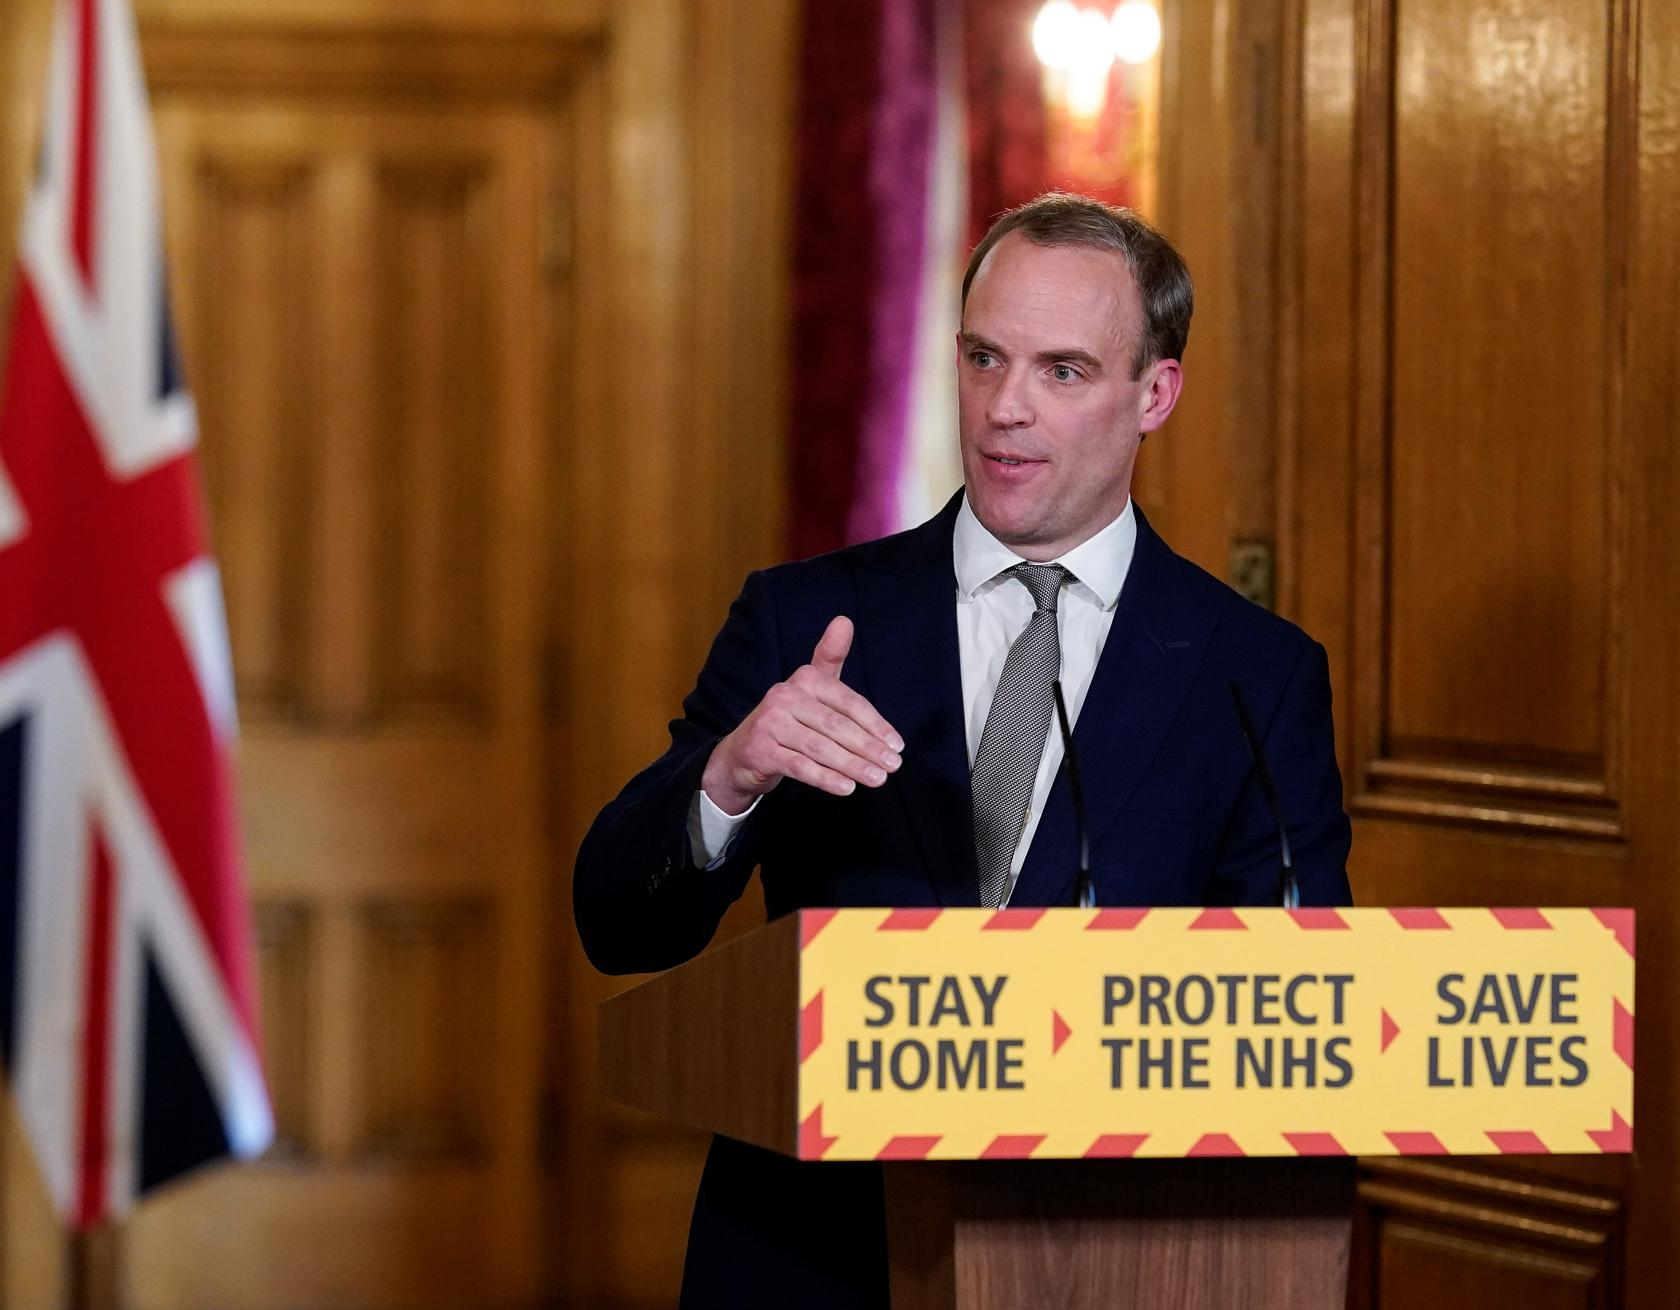 Britain confident about hitting 100,000 Coronavirus daily tests target, claims Dominic Raab